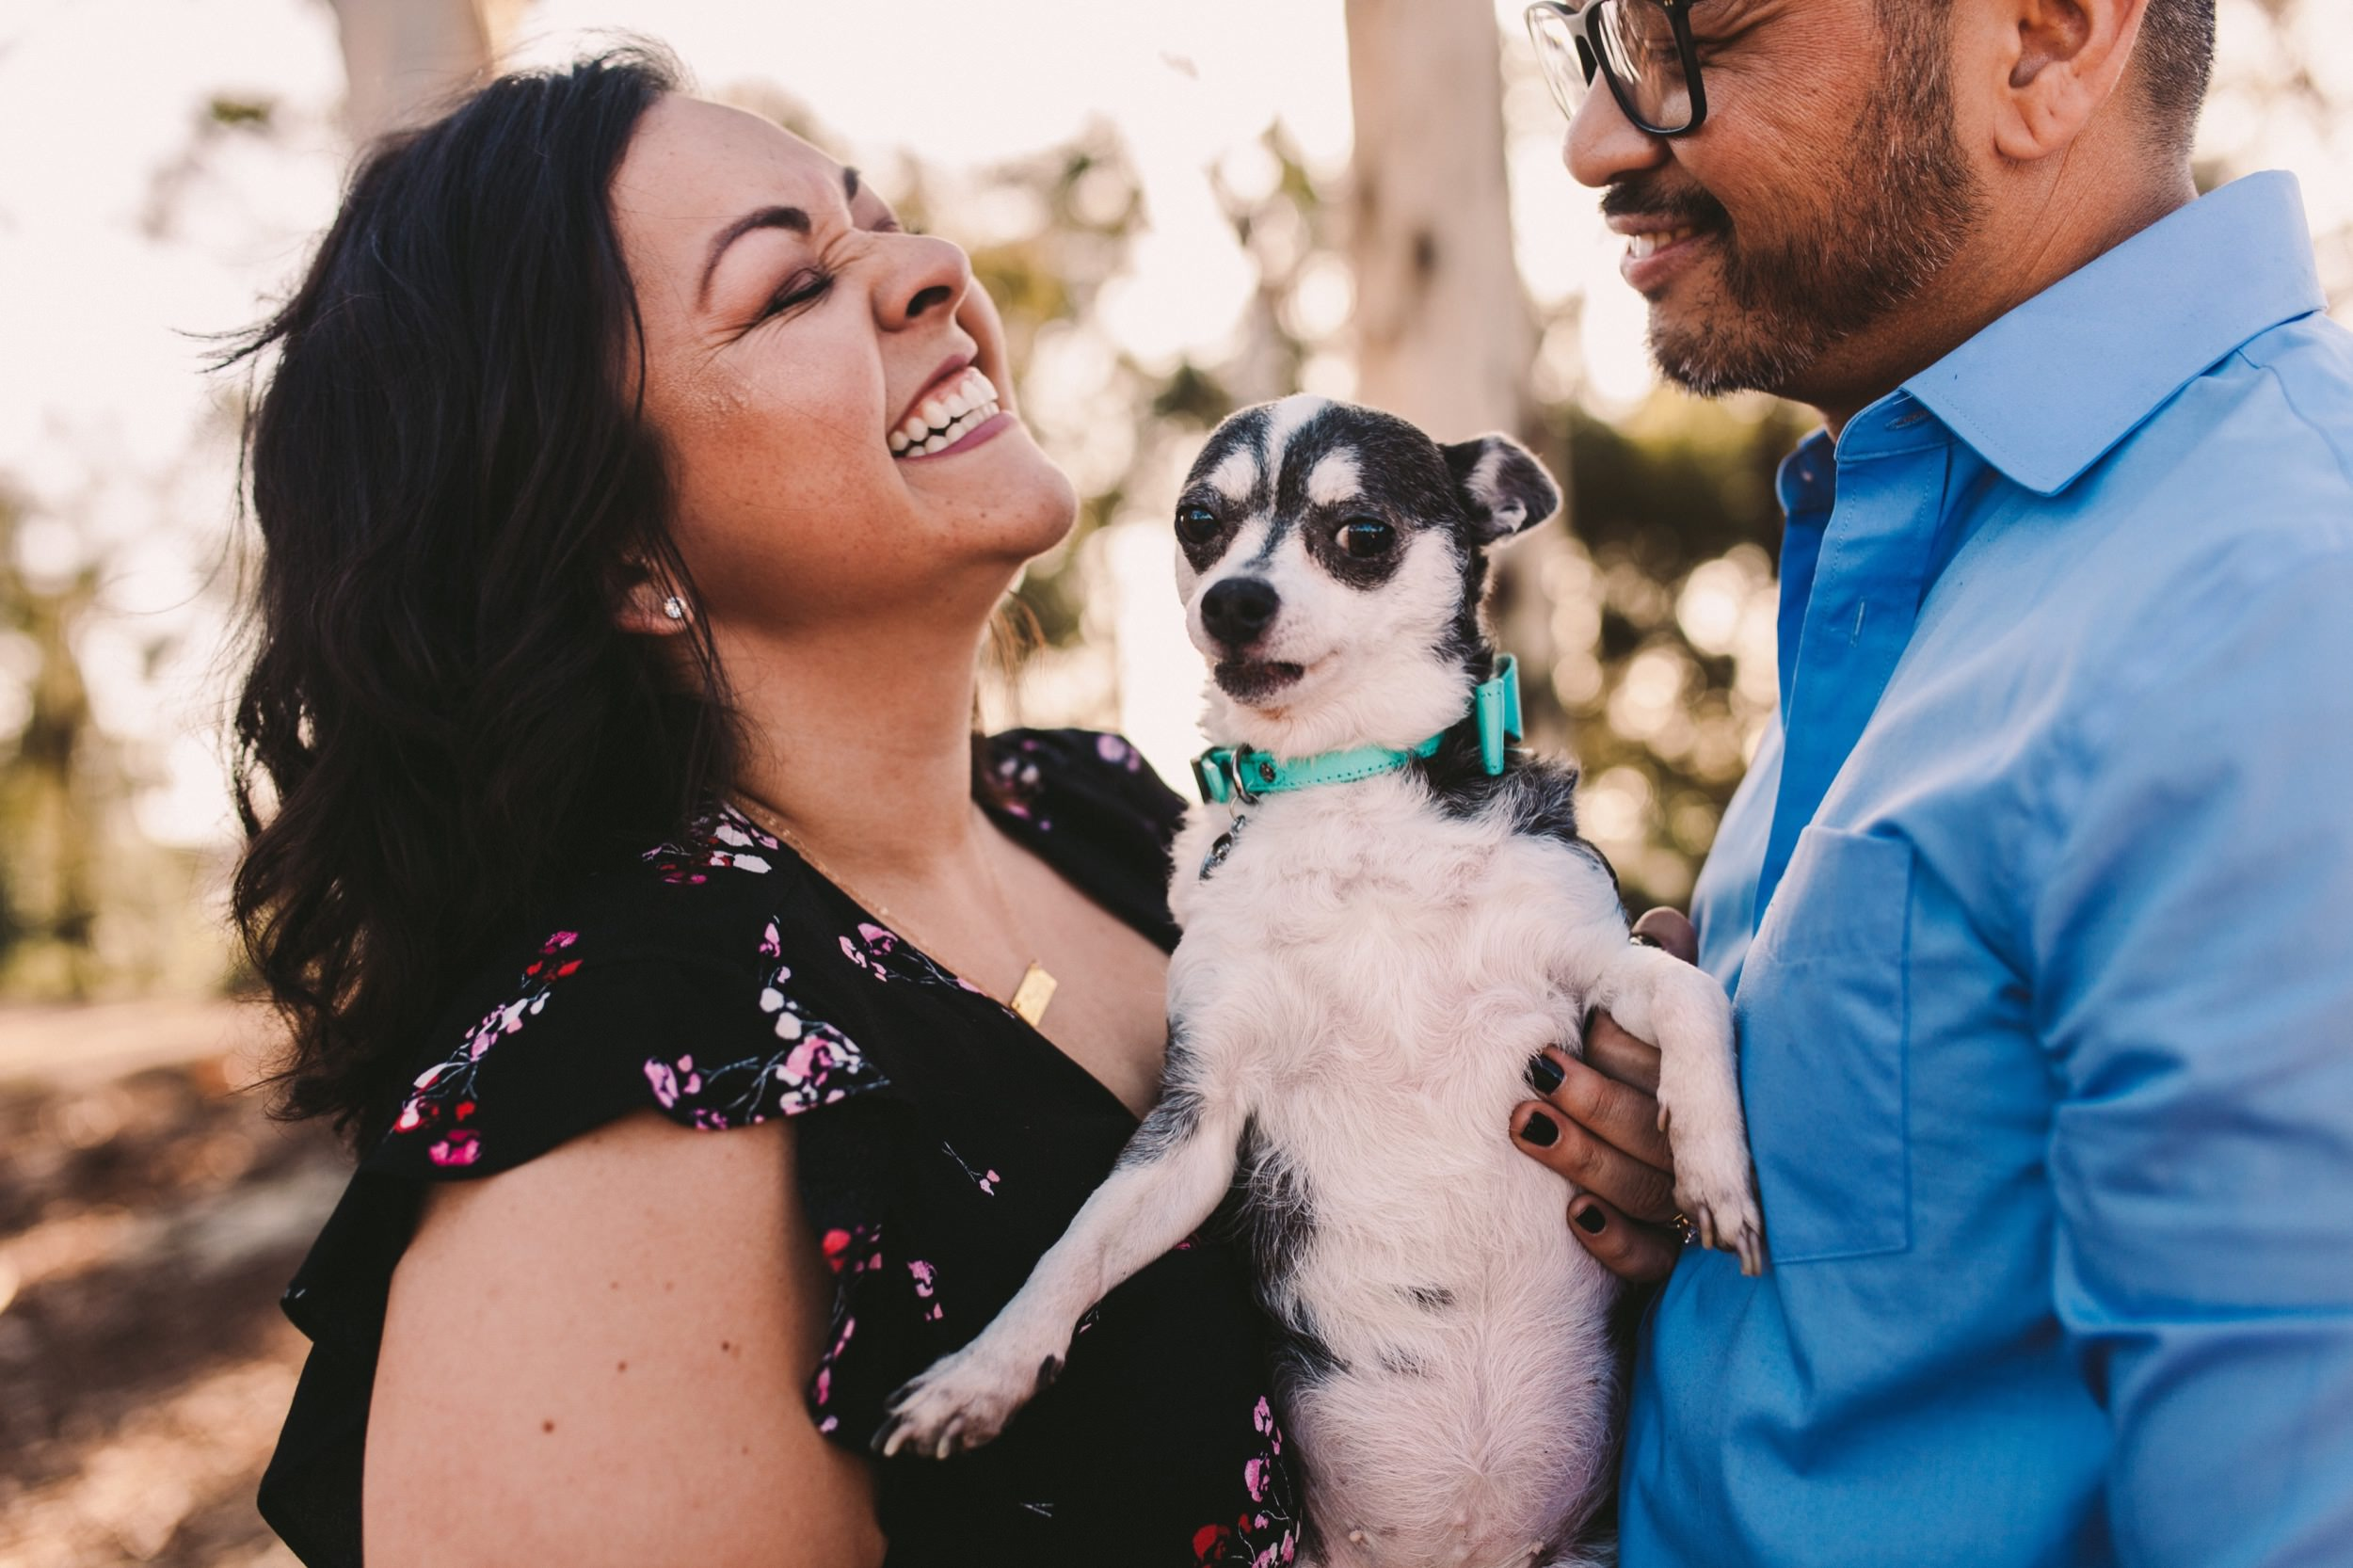 Presidio Park San Diego Engagement Session Photography-4.jpg